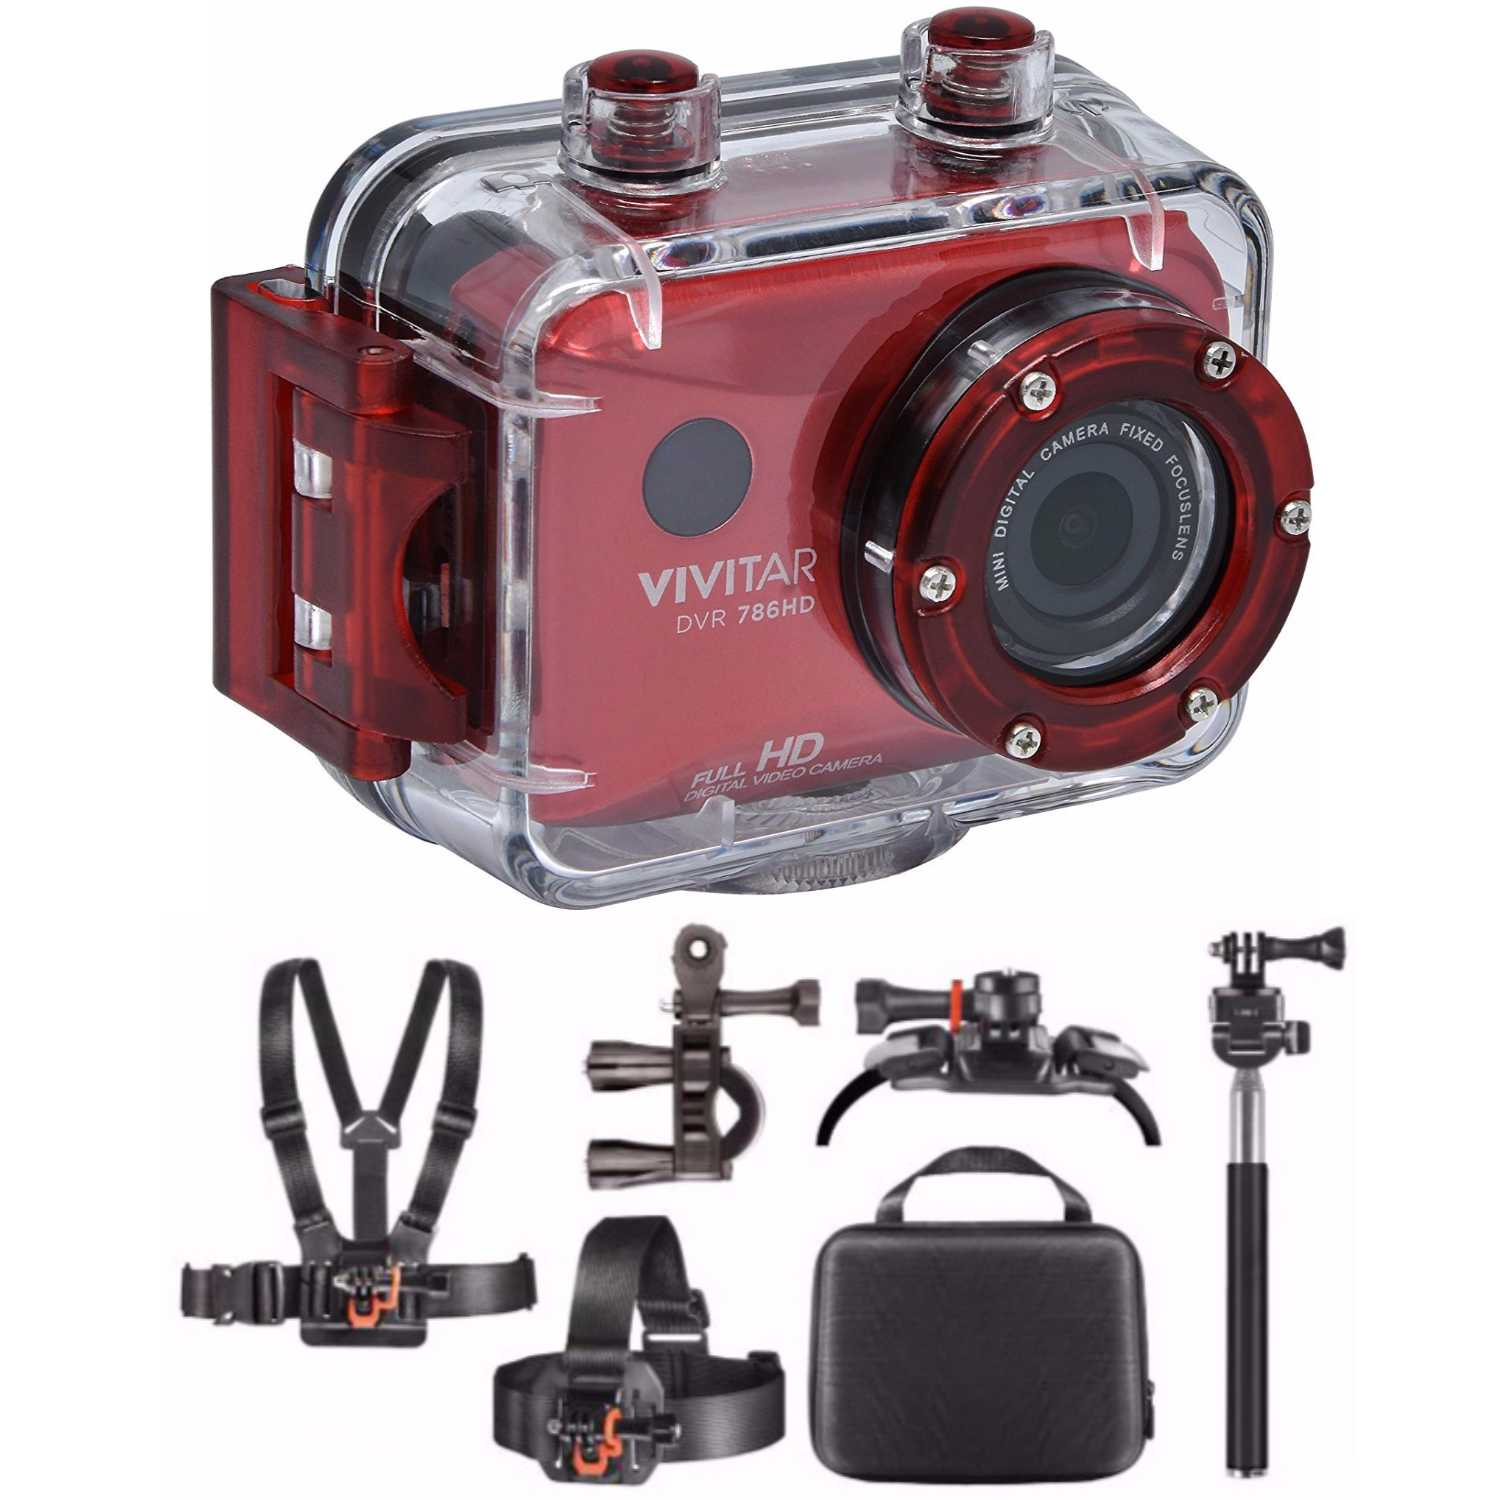 Vivitar DVR786HD Full HD Action Cam w/ Vivitar Adventure On Outdoor Action Kit